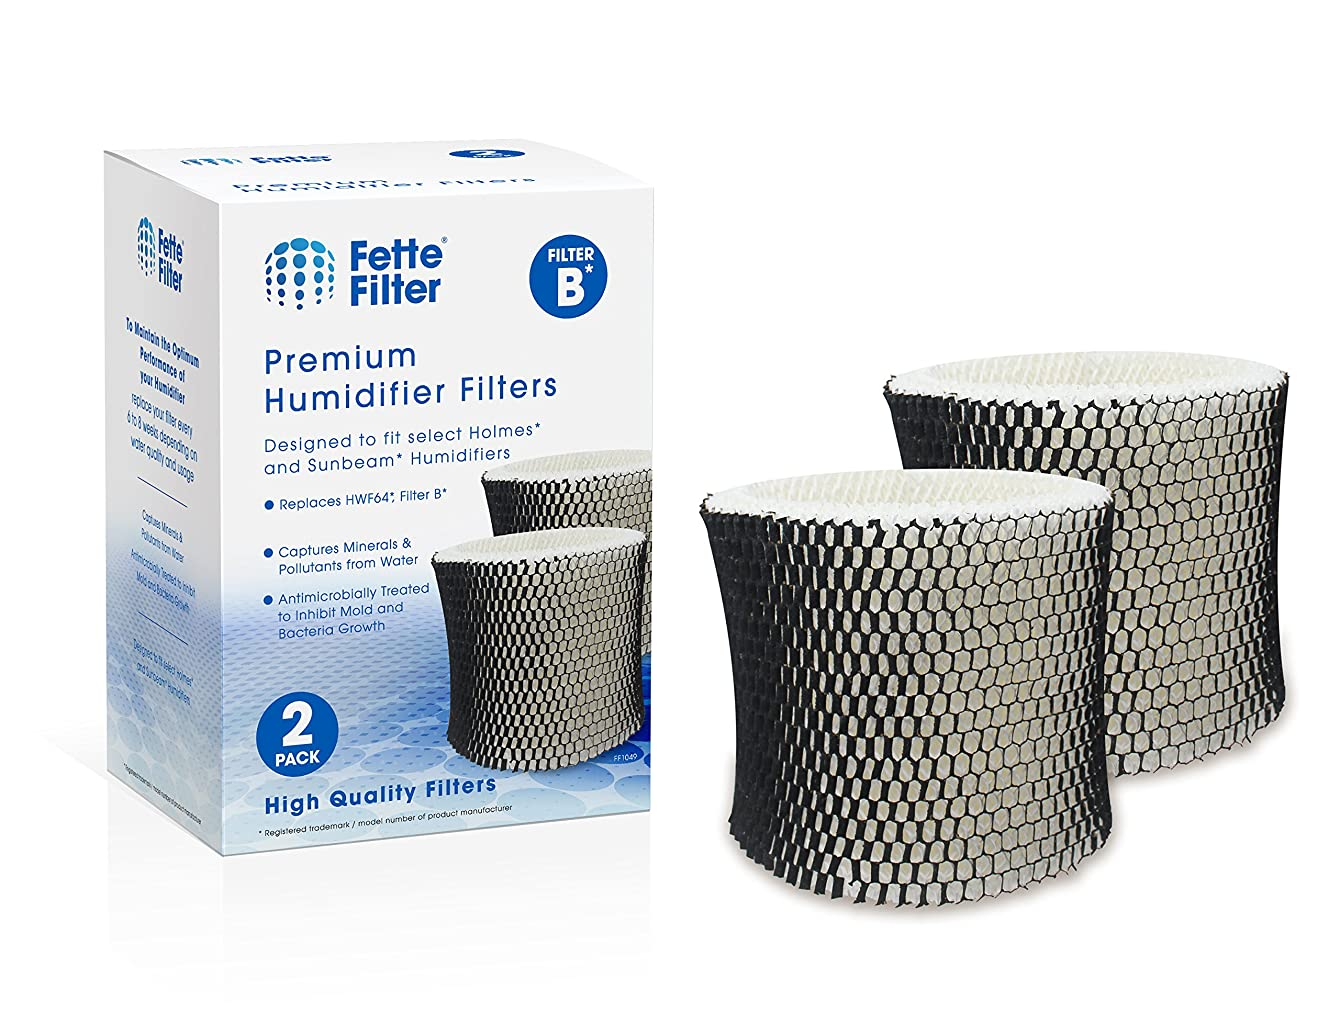 Fette Filter - Humidifier Filter Compatible with Holmes HWF64 - Filter B